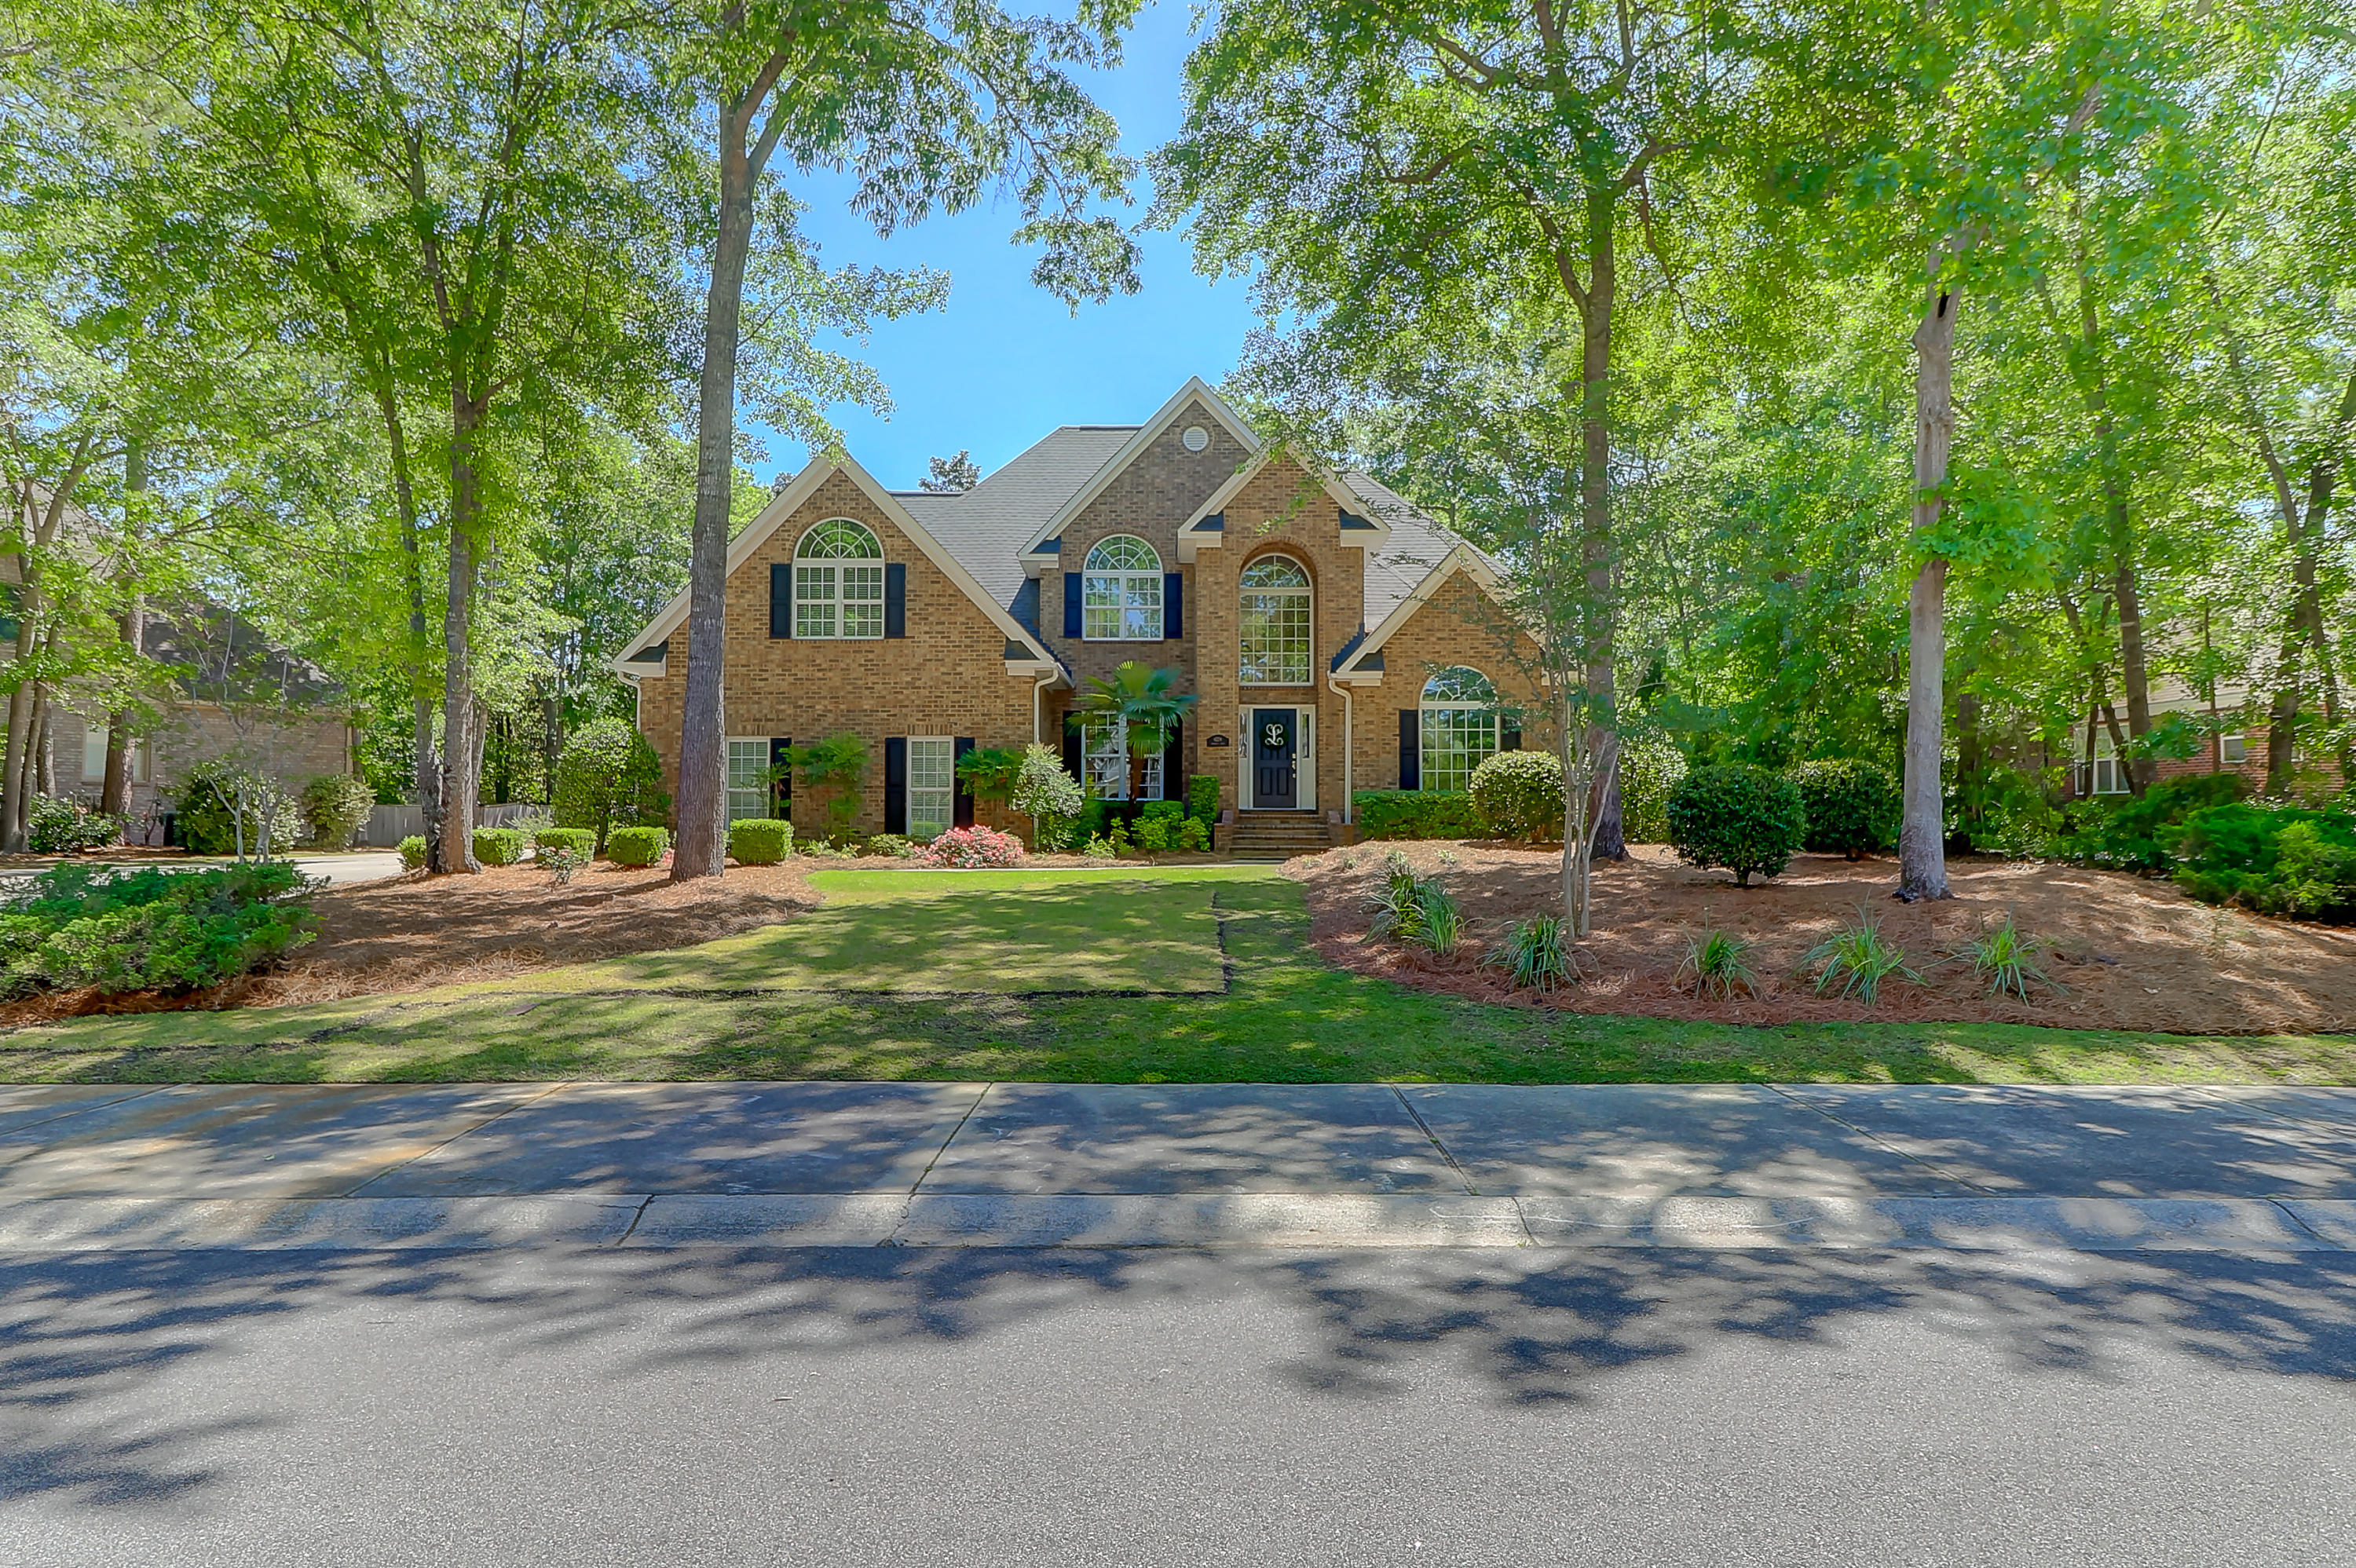 Photo of 4224 Sawgrass Dr, Charleston, SC 29420